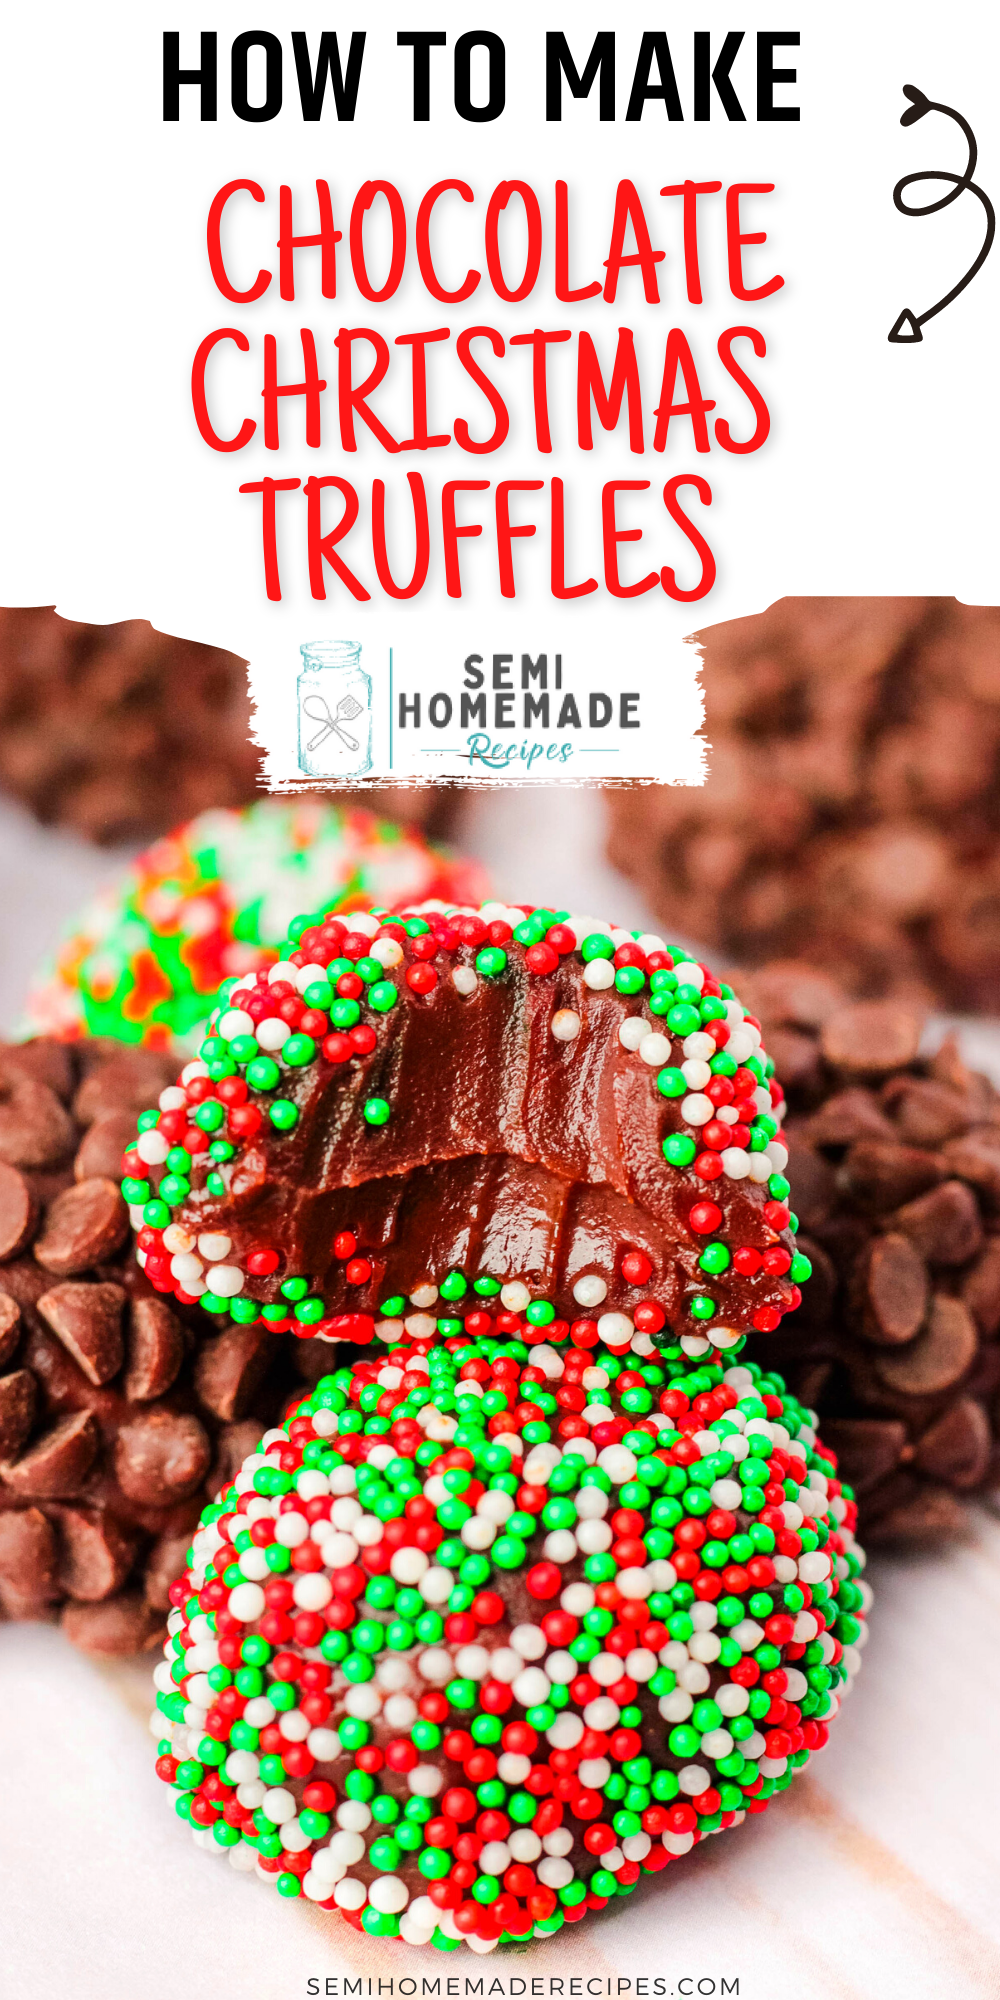 These Super Easy Chocolate Christmas Truffles are perfect for Christmas parties, Christmas eve and homemade gifts!